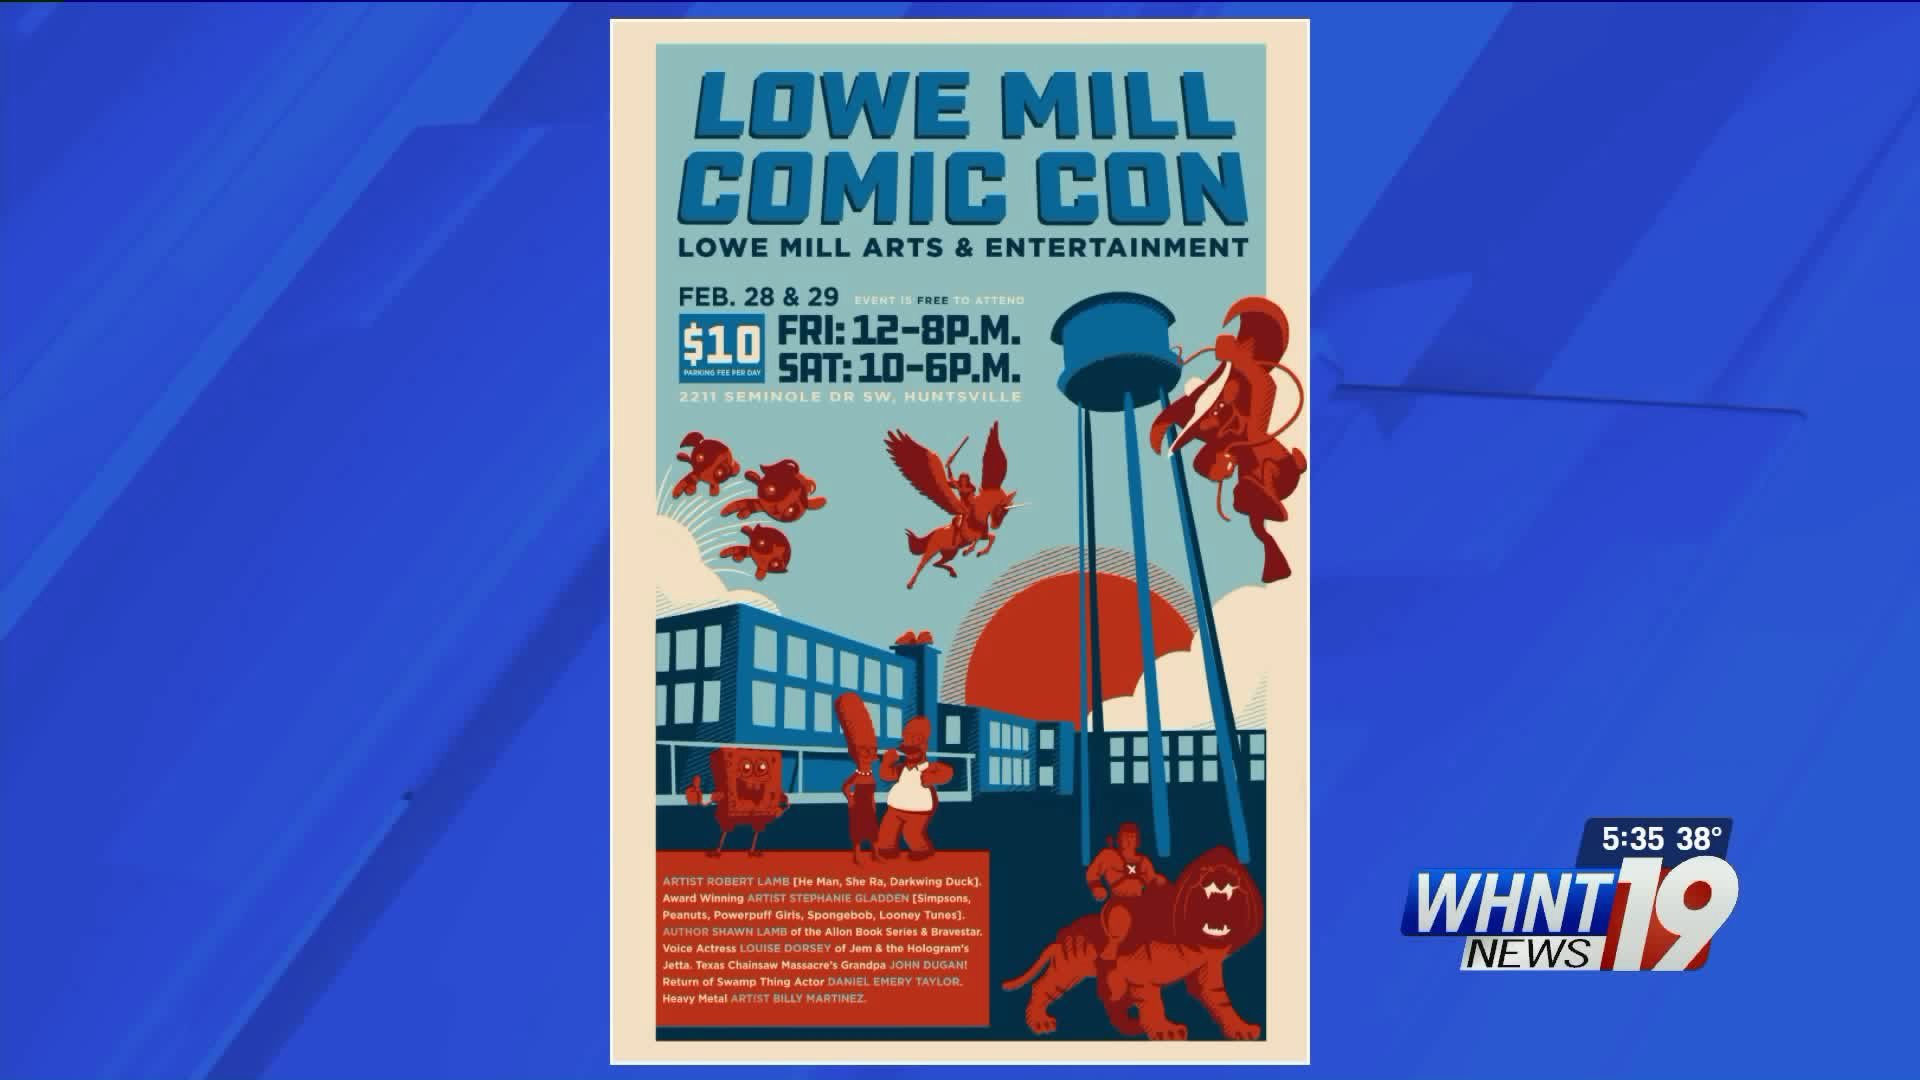 The convention for comic and pop culture fans will spread through the former cotton mill that now houses artists, studios, and vendors.